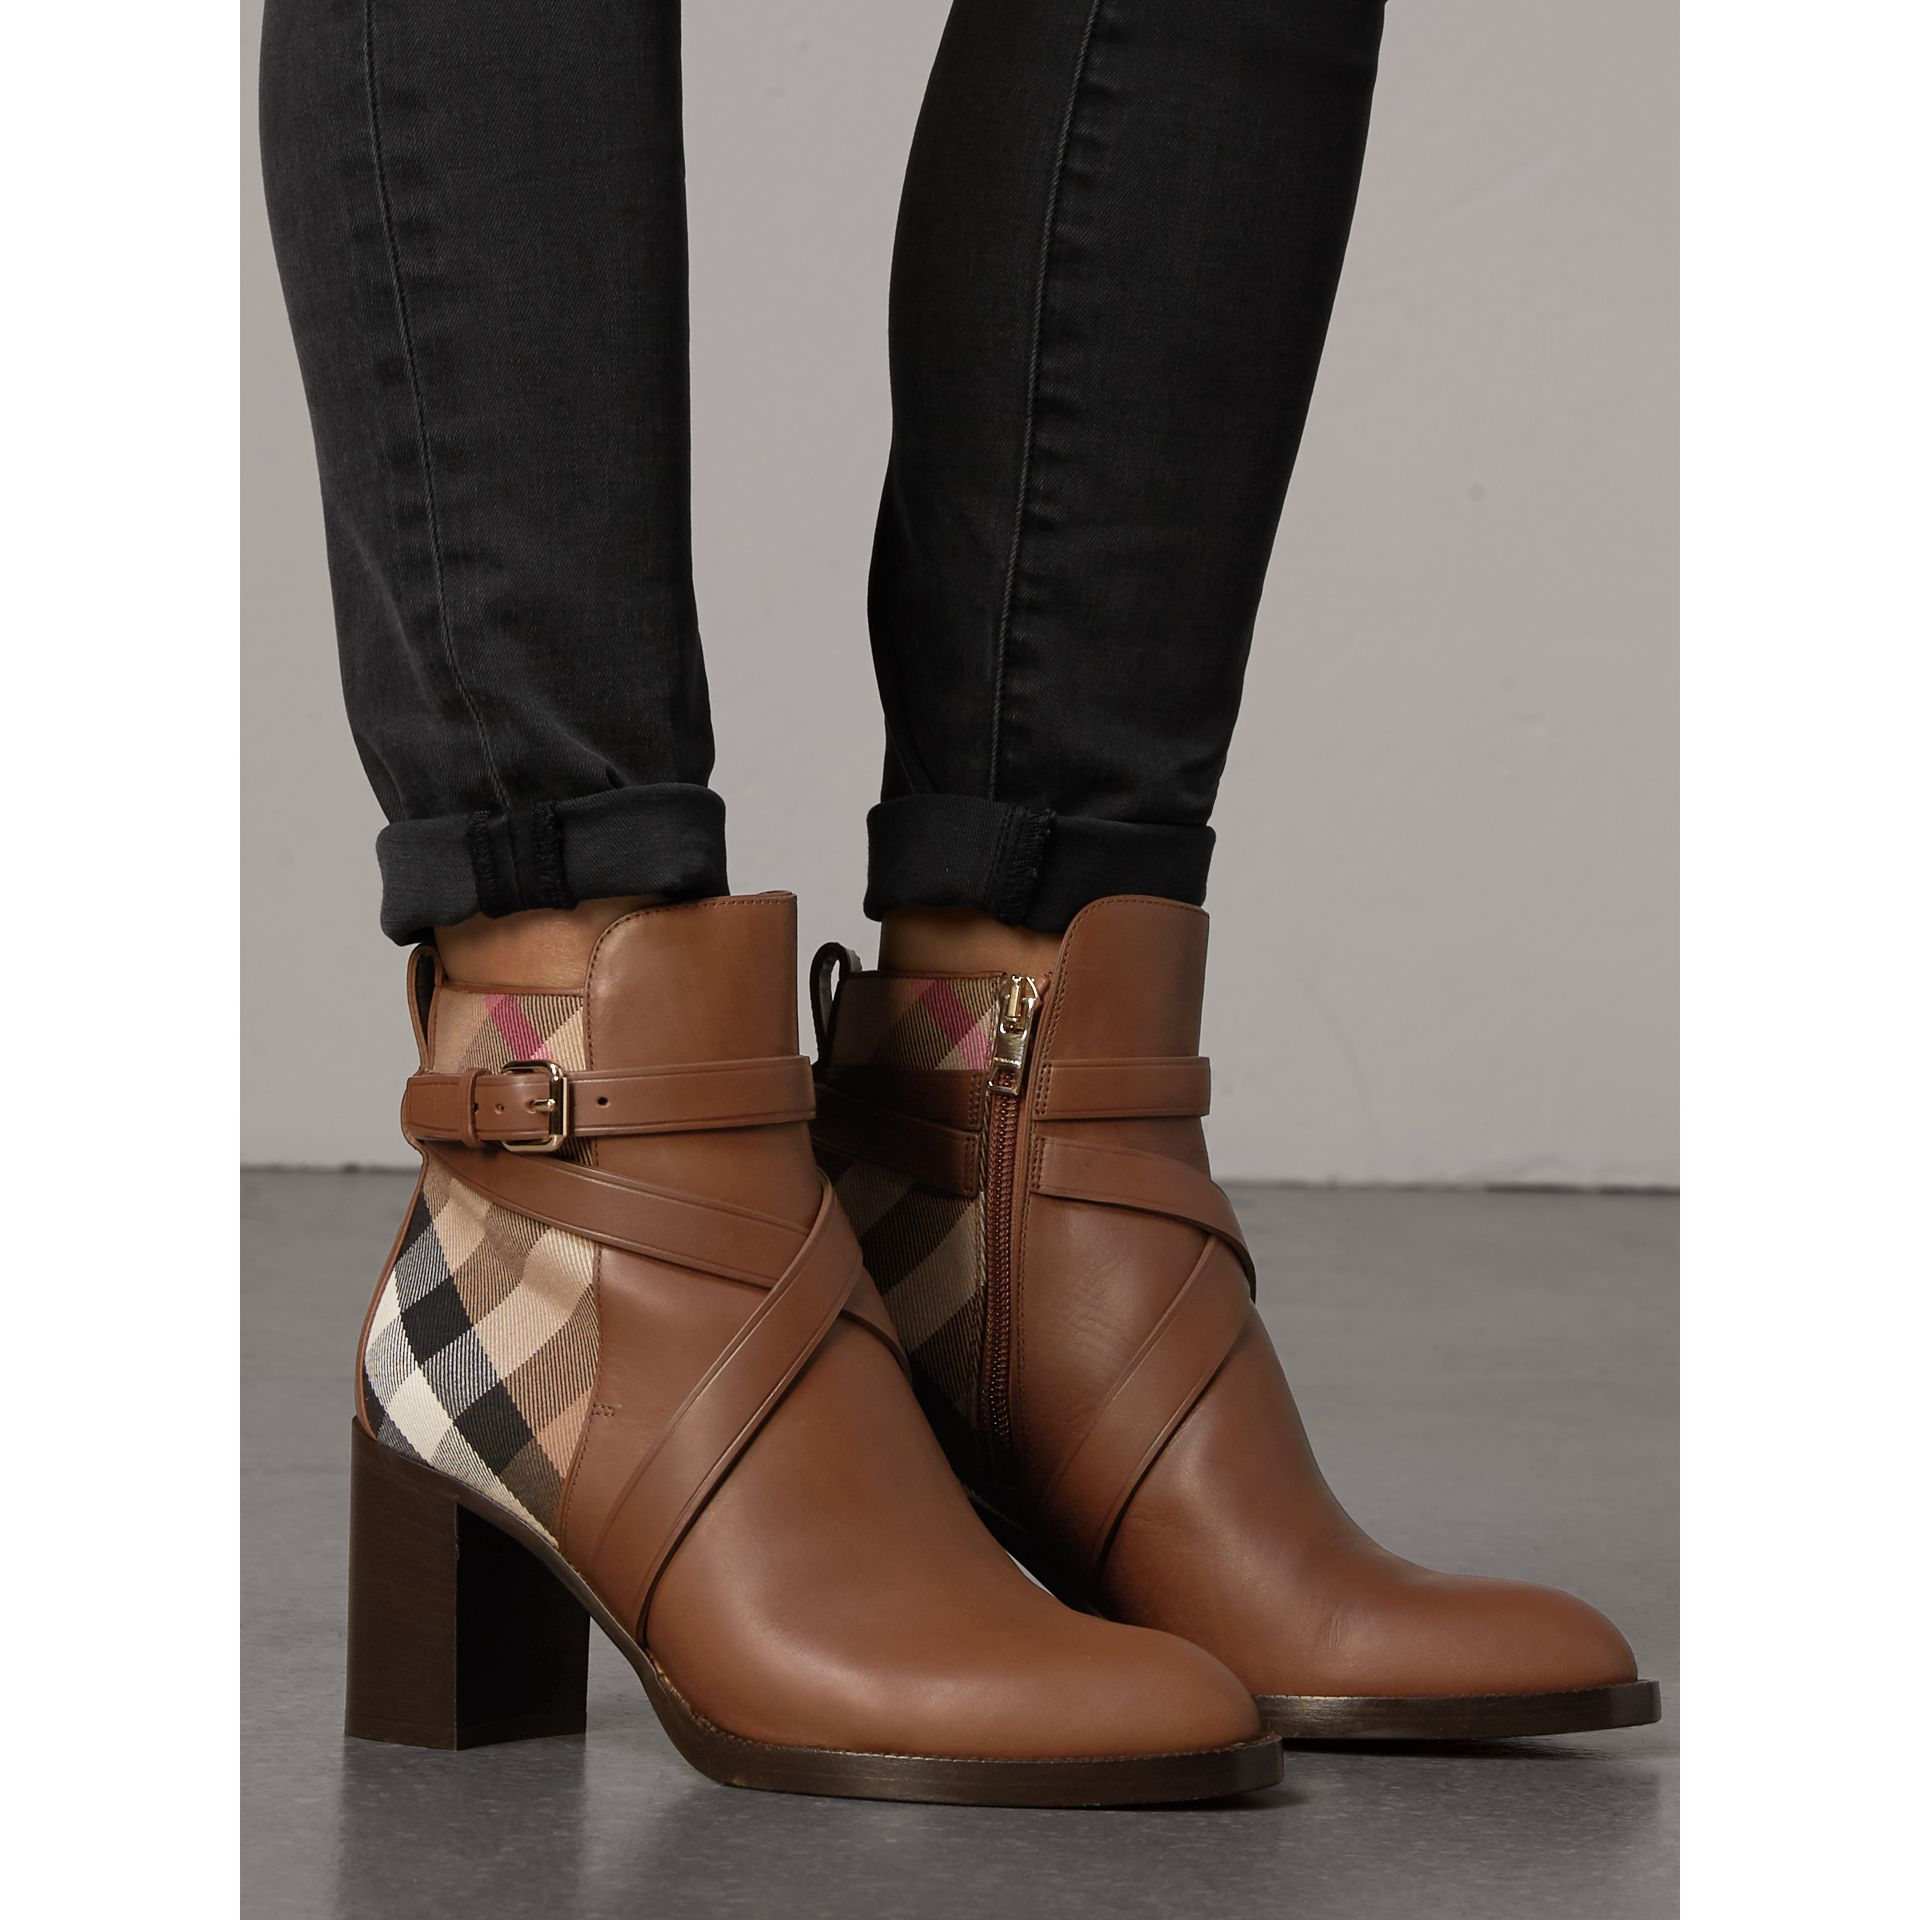 Bottines en cuir et coton House check (Camel Vif) - Femme | Burberry - photo de la galerie 3